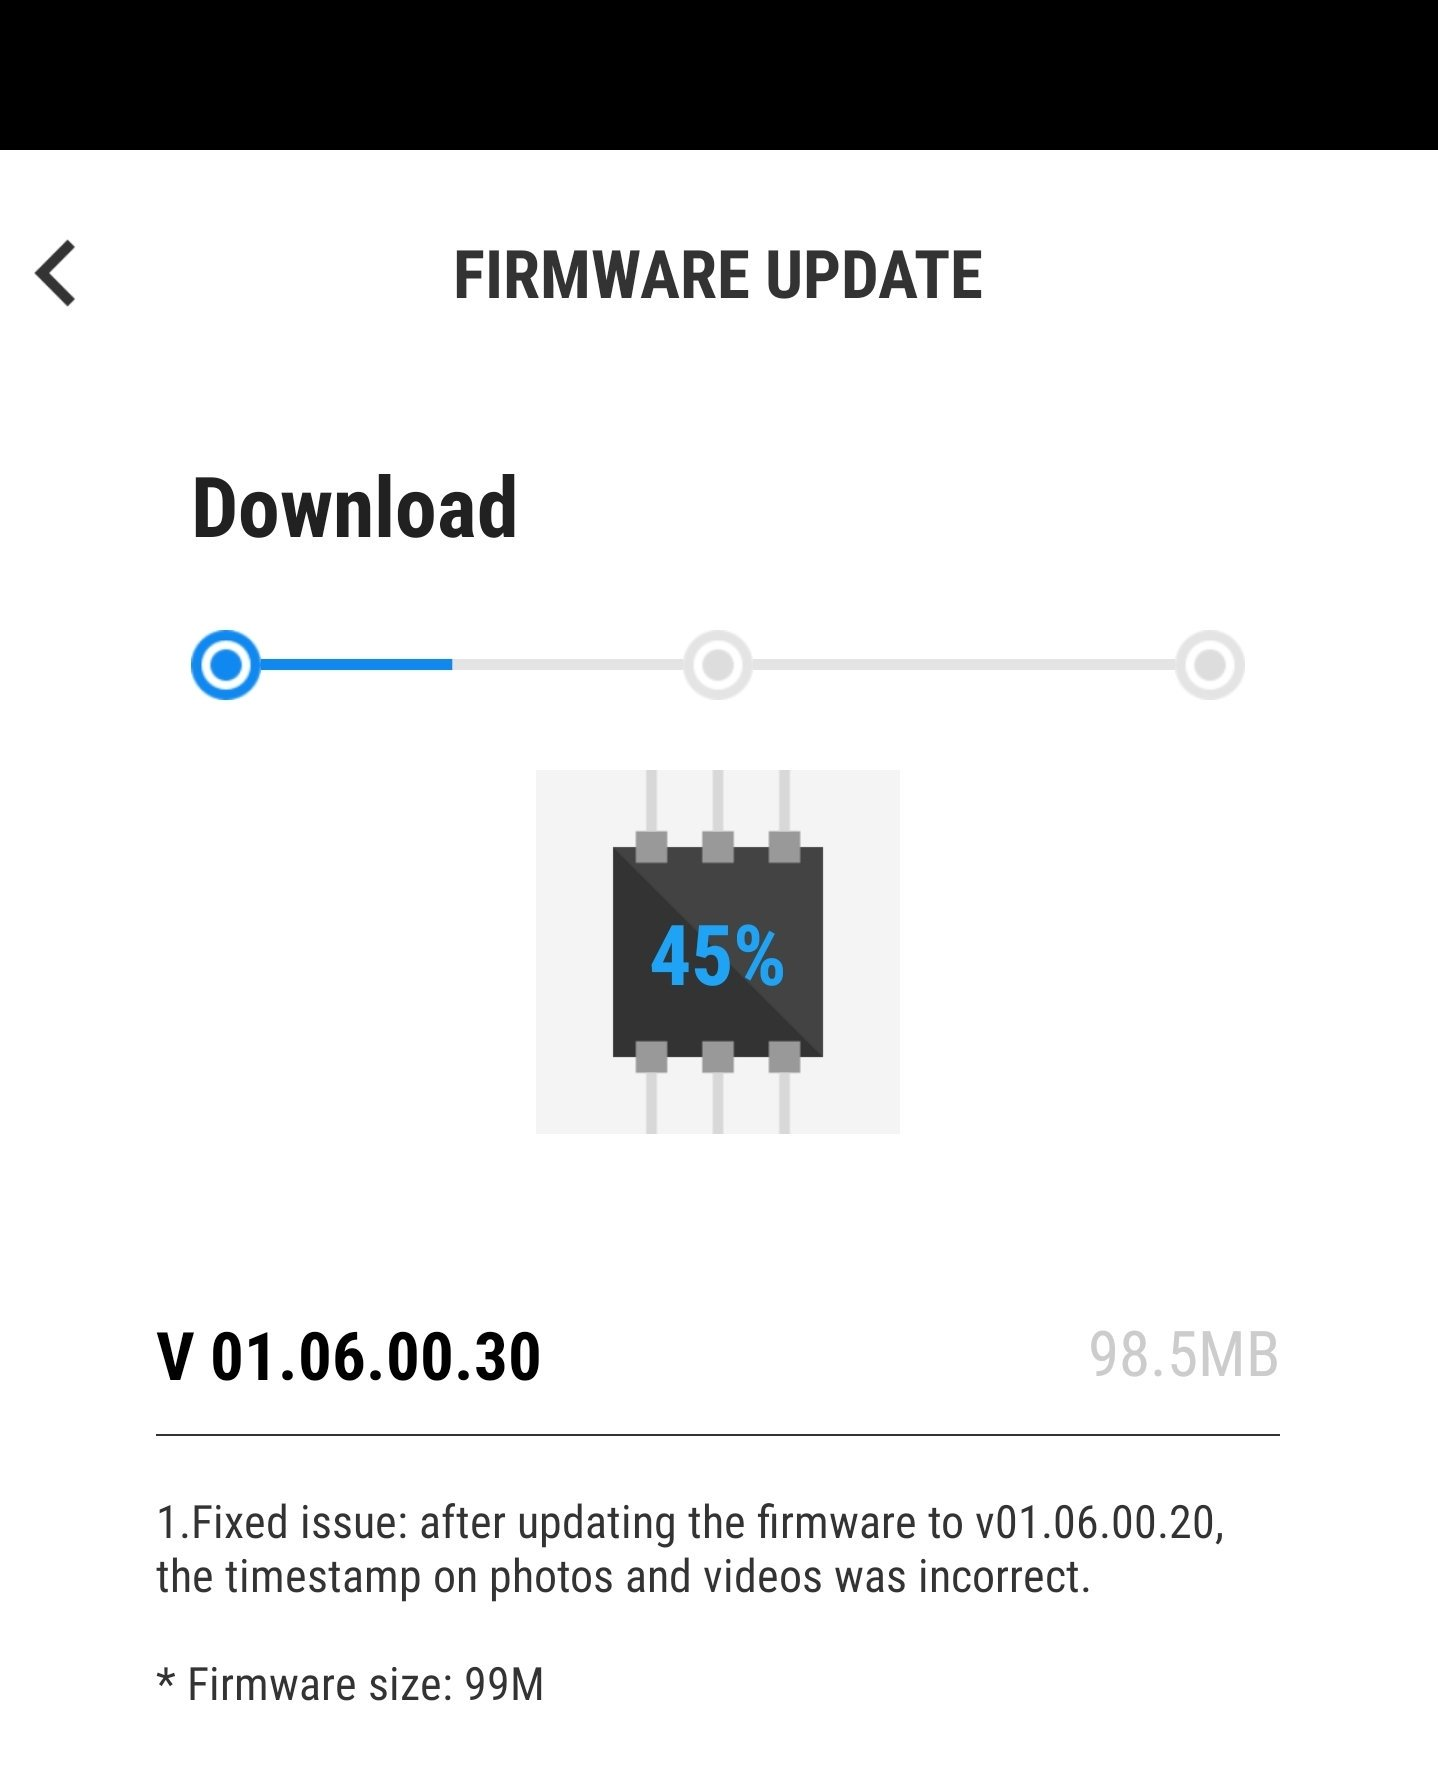 The latest DJI Osmo Pocket firmware update